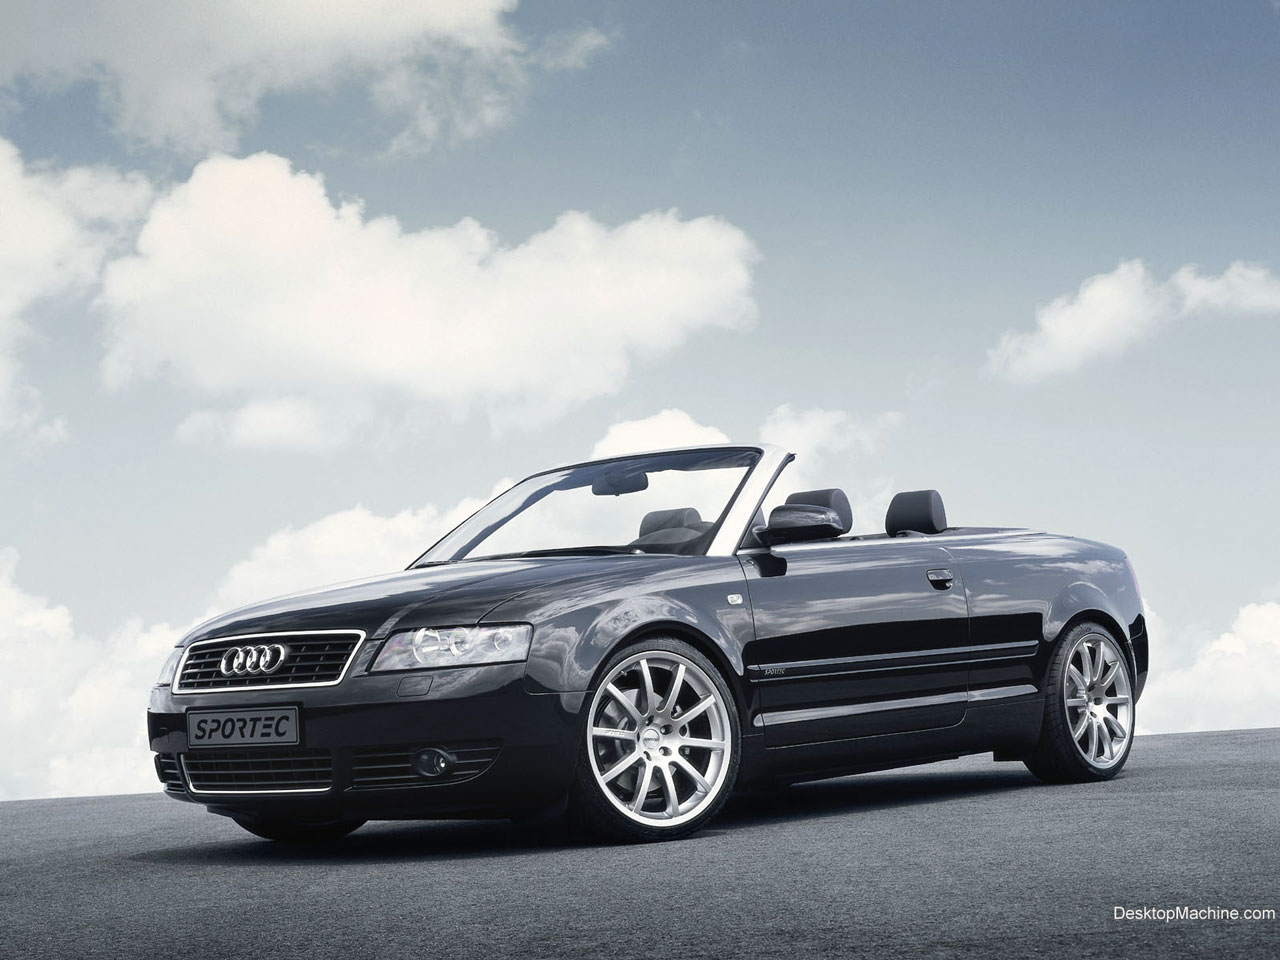 audi a4 cabrio sportec 1280x960 b4 tapety na pulpit. Black Bedroom Furniture Sets. Home Design Ideas